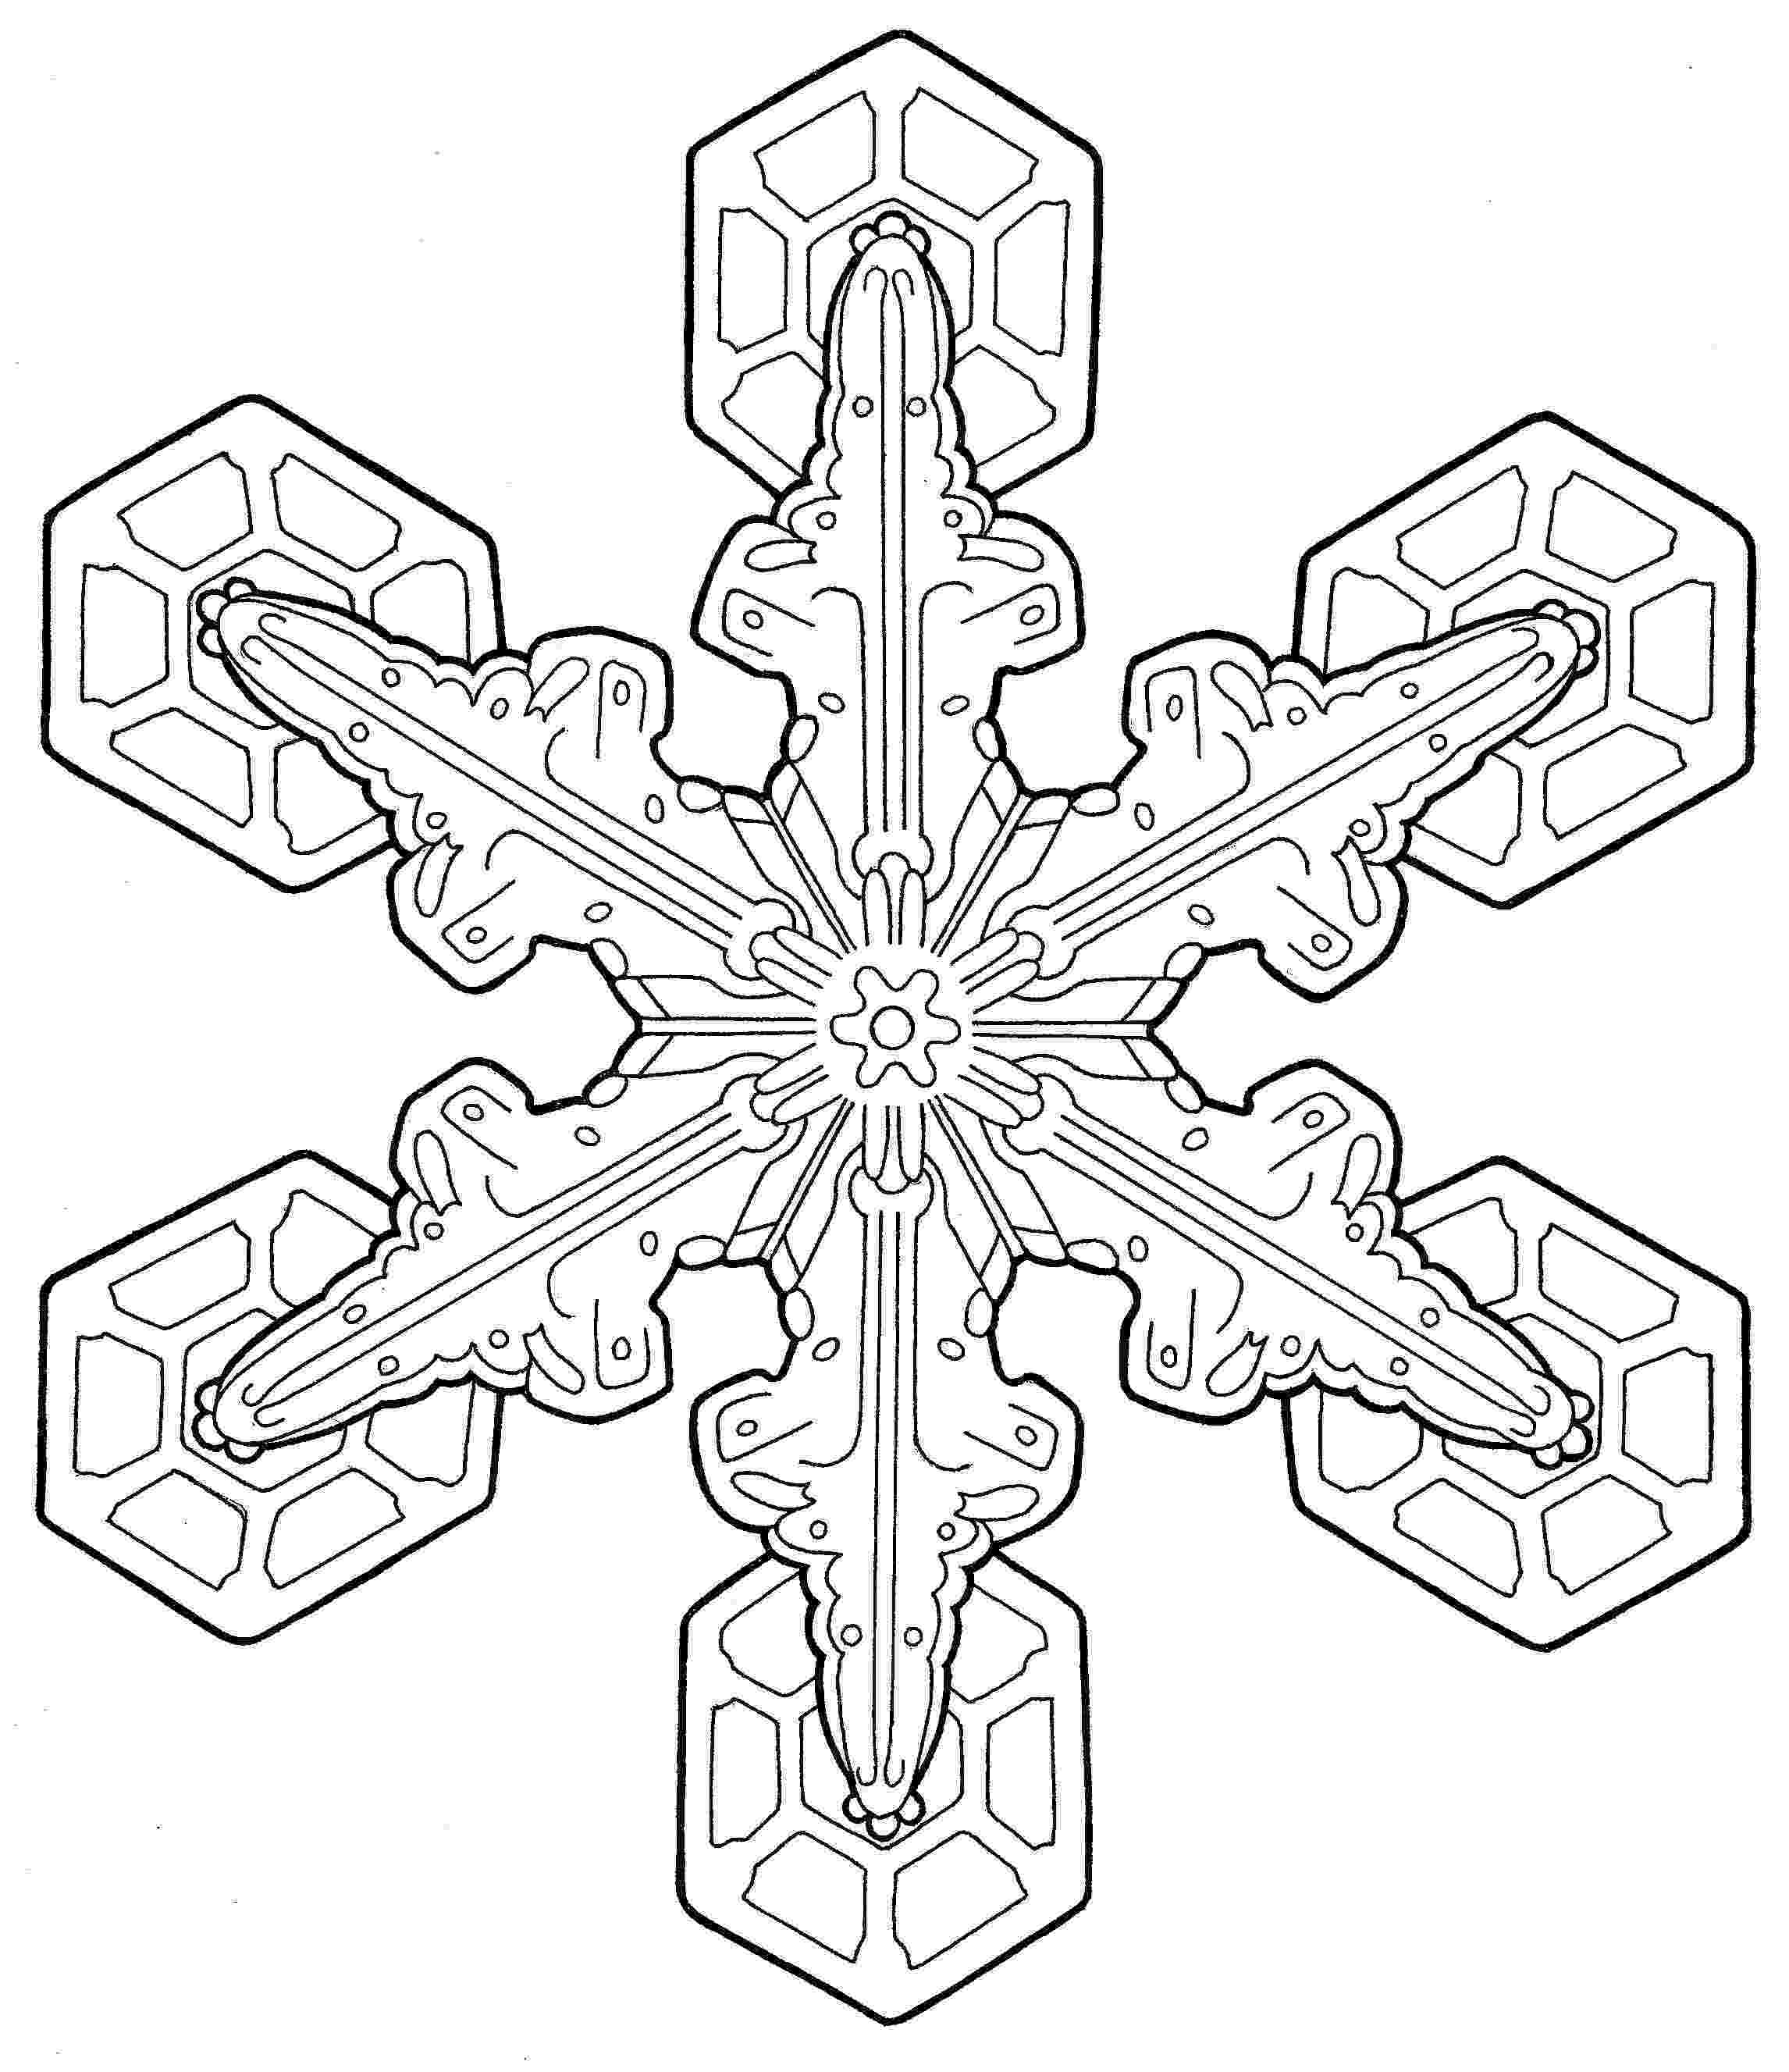 coloring pages online for adults house with a mill printable adult coloring page from for pages adults coloring online